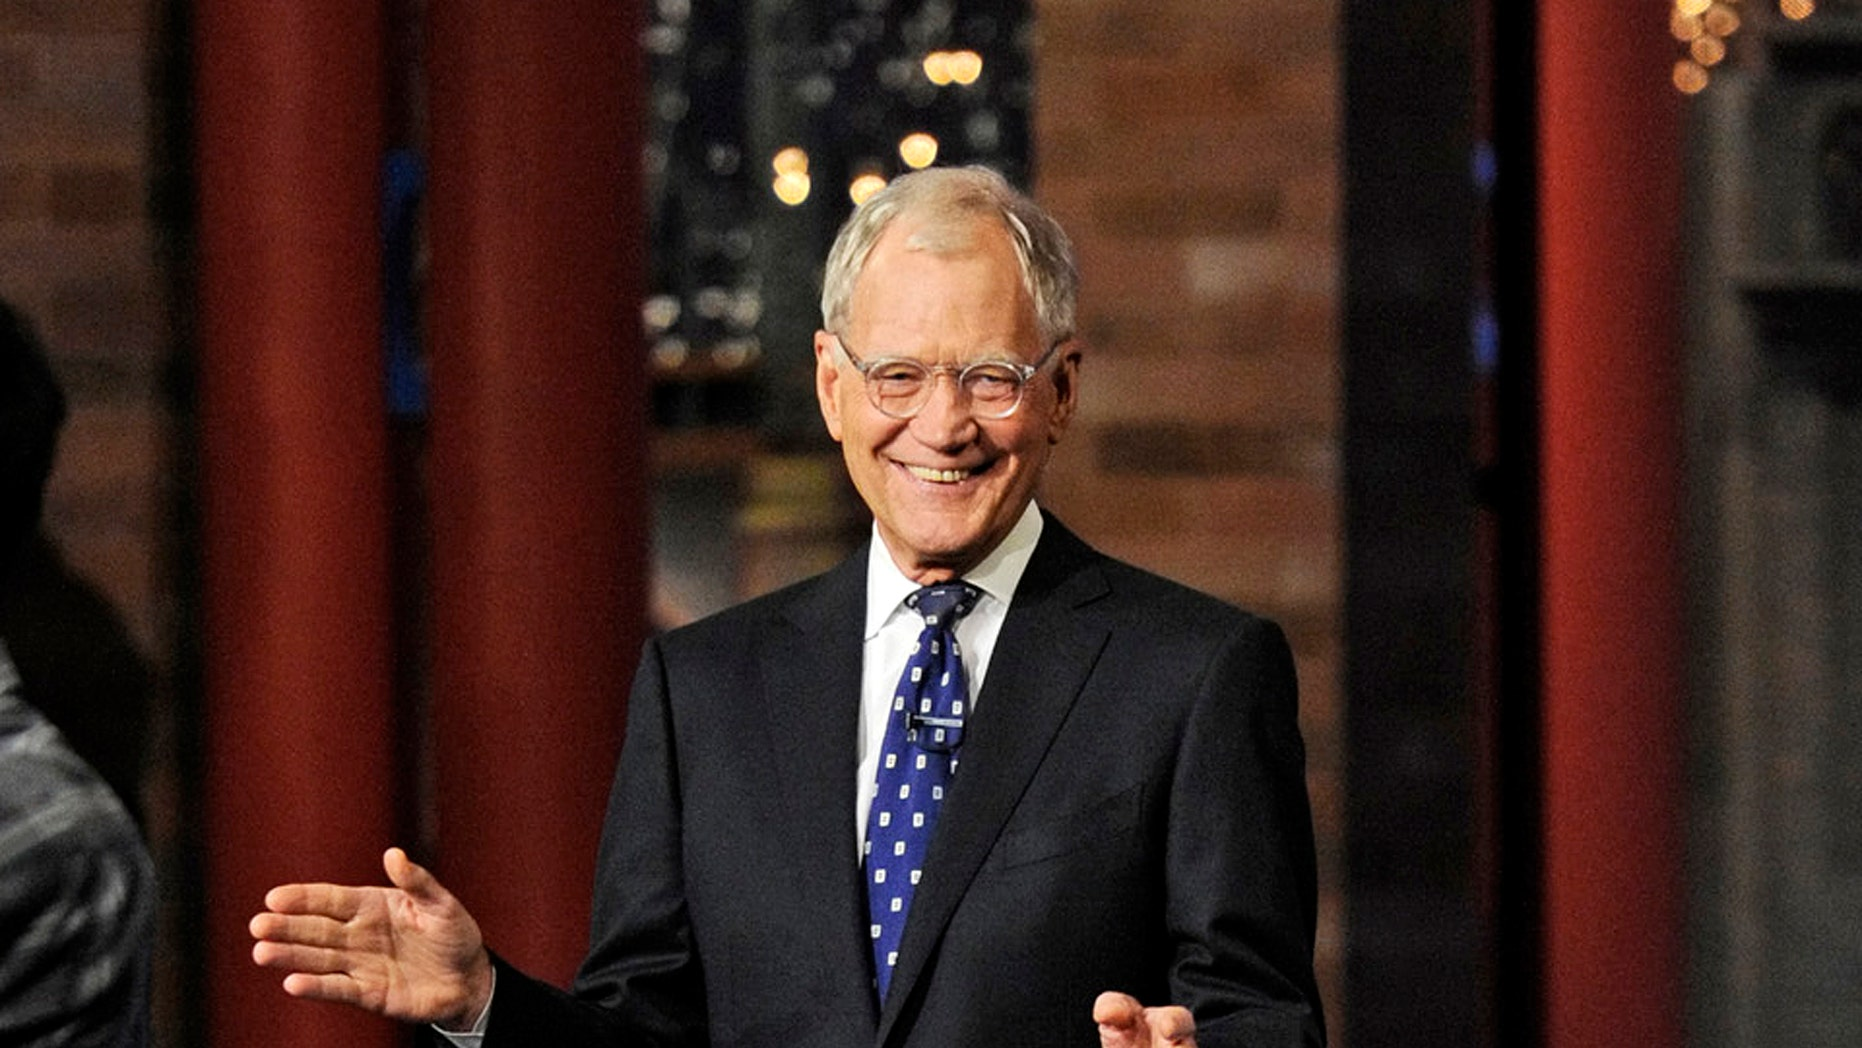 """In this image released by CBS, David Letterman appears during a taping of his final """"Late Show with David Letterman"""" Wednesday, May 20, 2015 at the Ed Sullivan Theater in New York."""